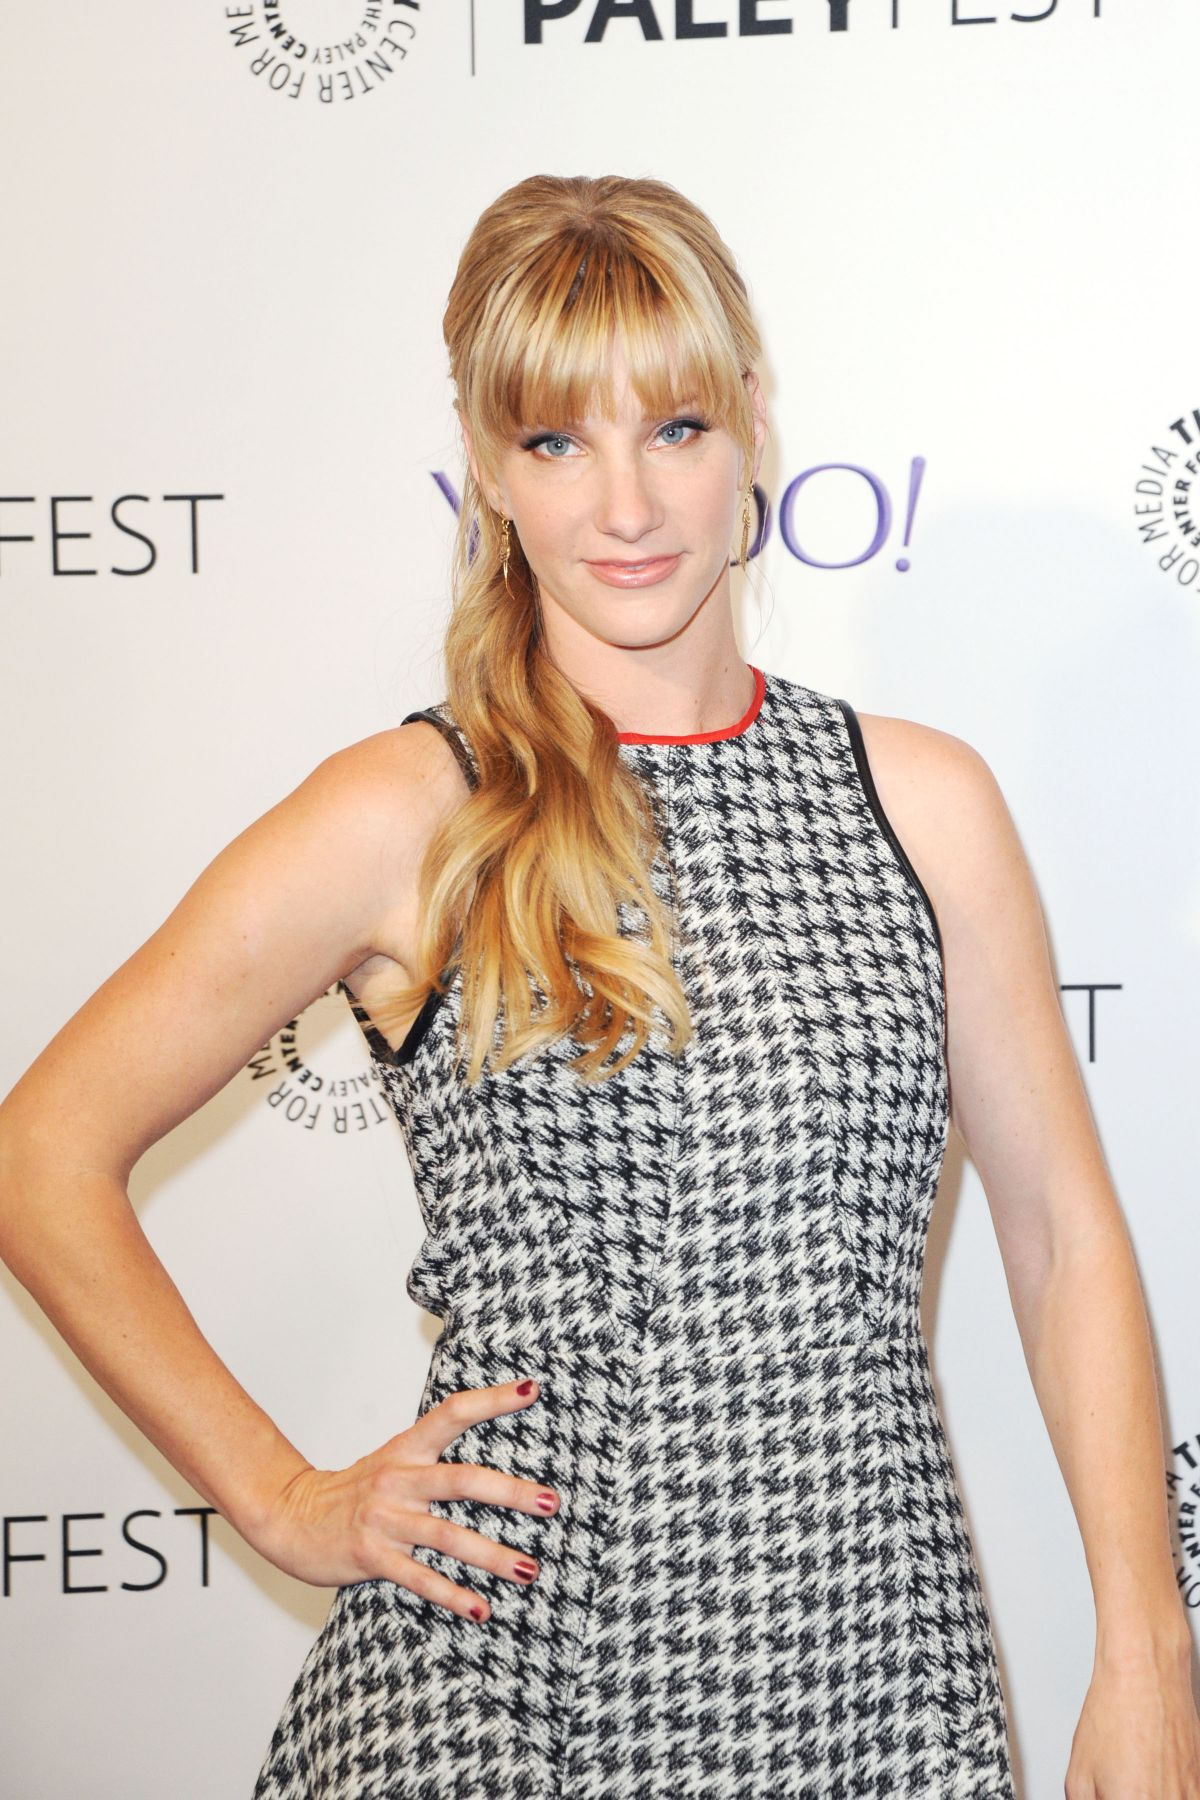 HEATHER MORRIS at 32nd Annual Paleyfest in Hollywood